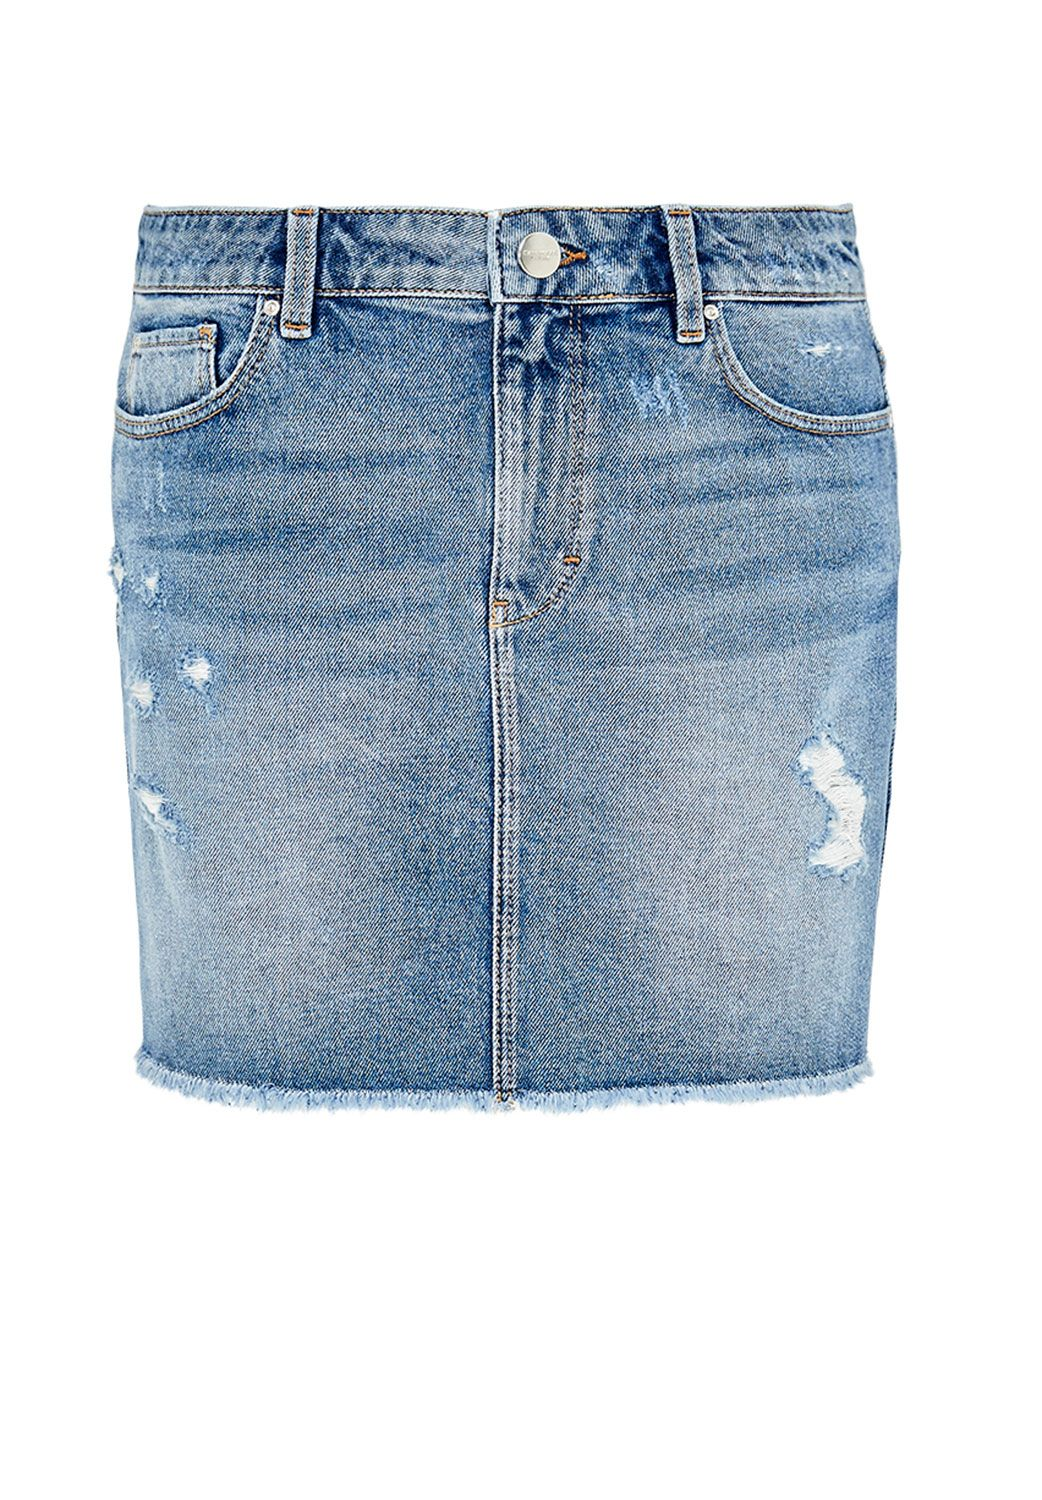 Hallhuber Pre-destroyed denim mini skirt, Blue